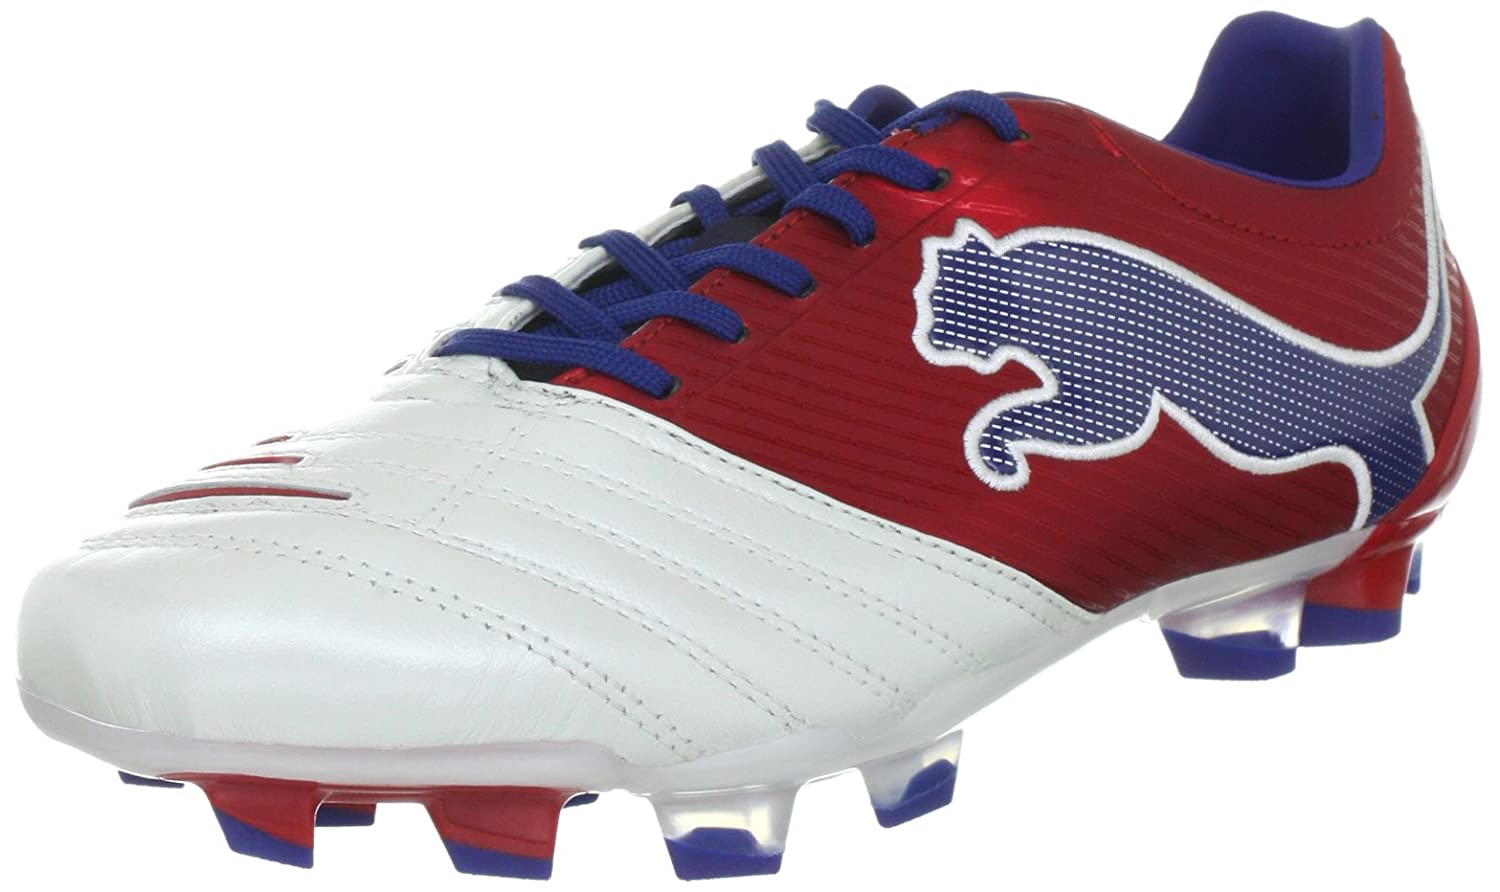 Puma PowerCat 2.12 FG Mens Leather Soccer Boots / Cleats